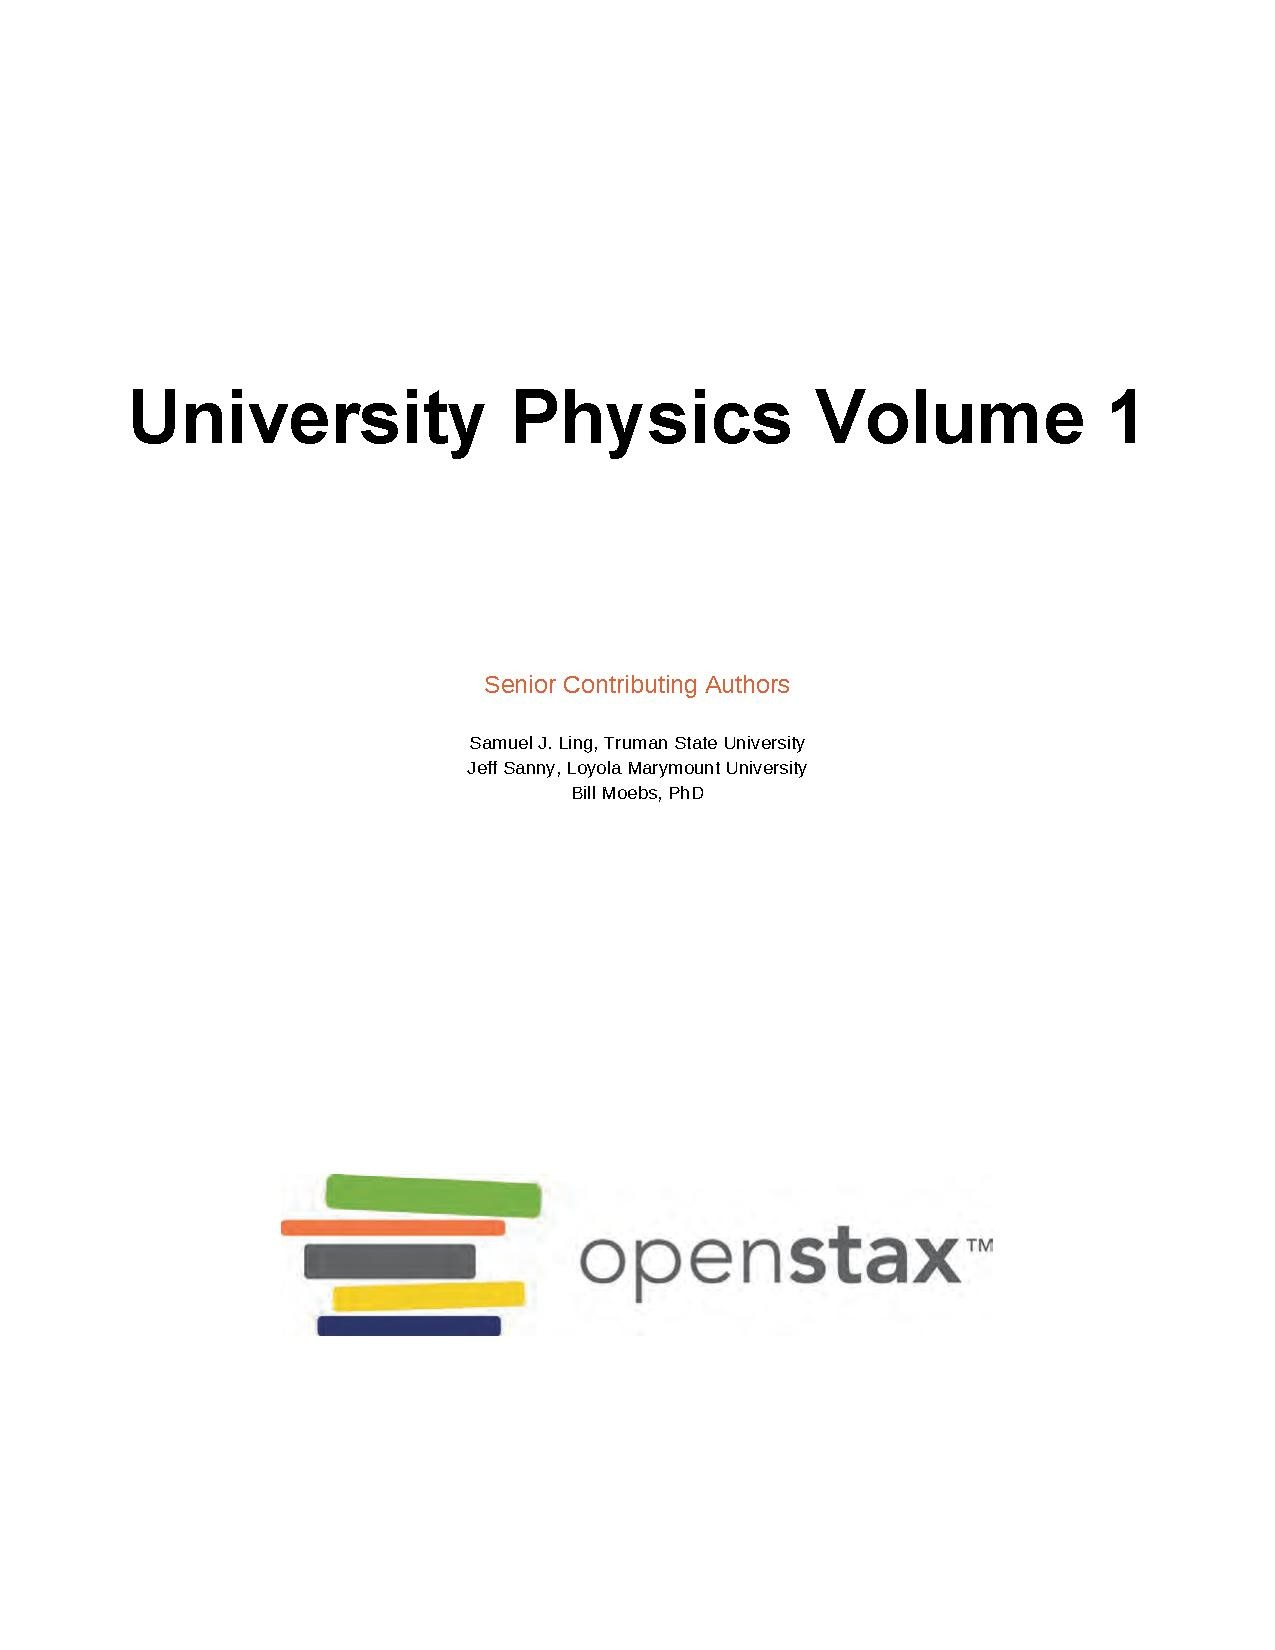 File:Openstax University Physics Volume 1-LR.pdf